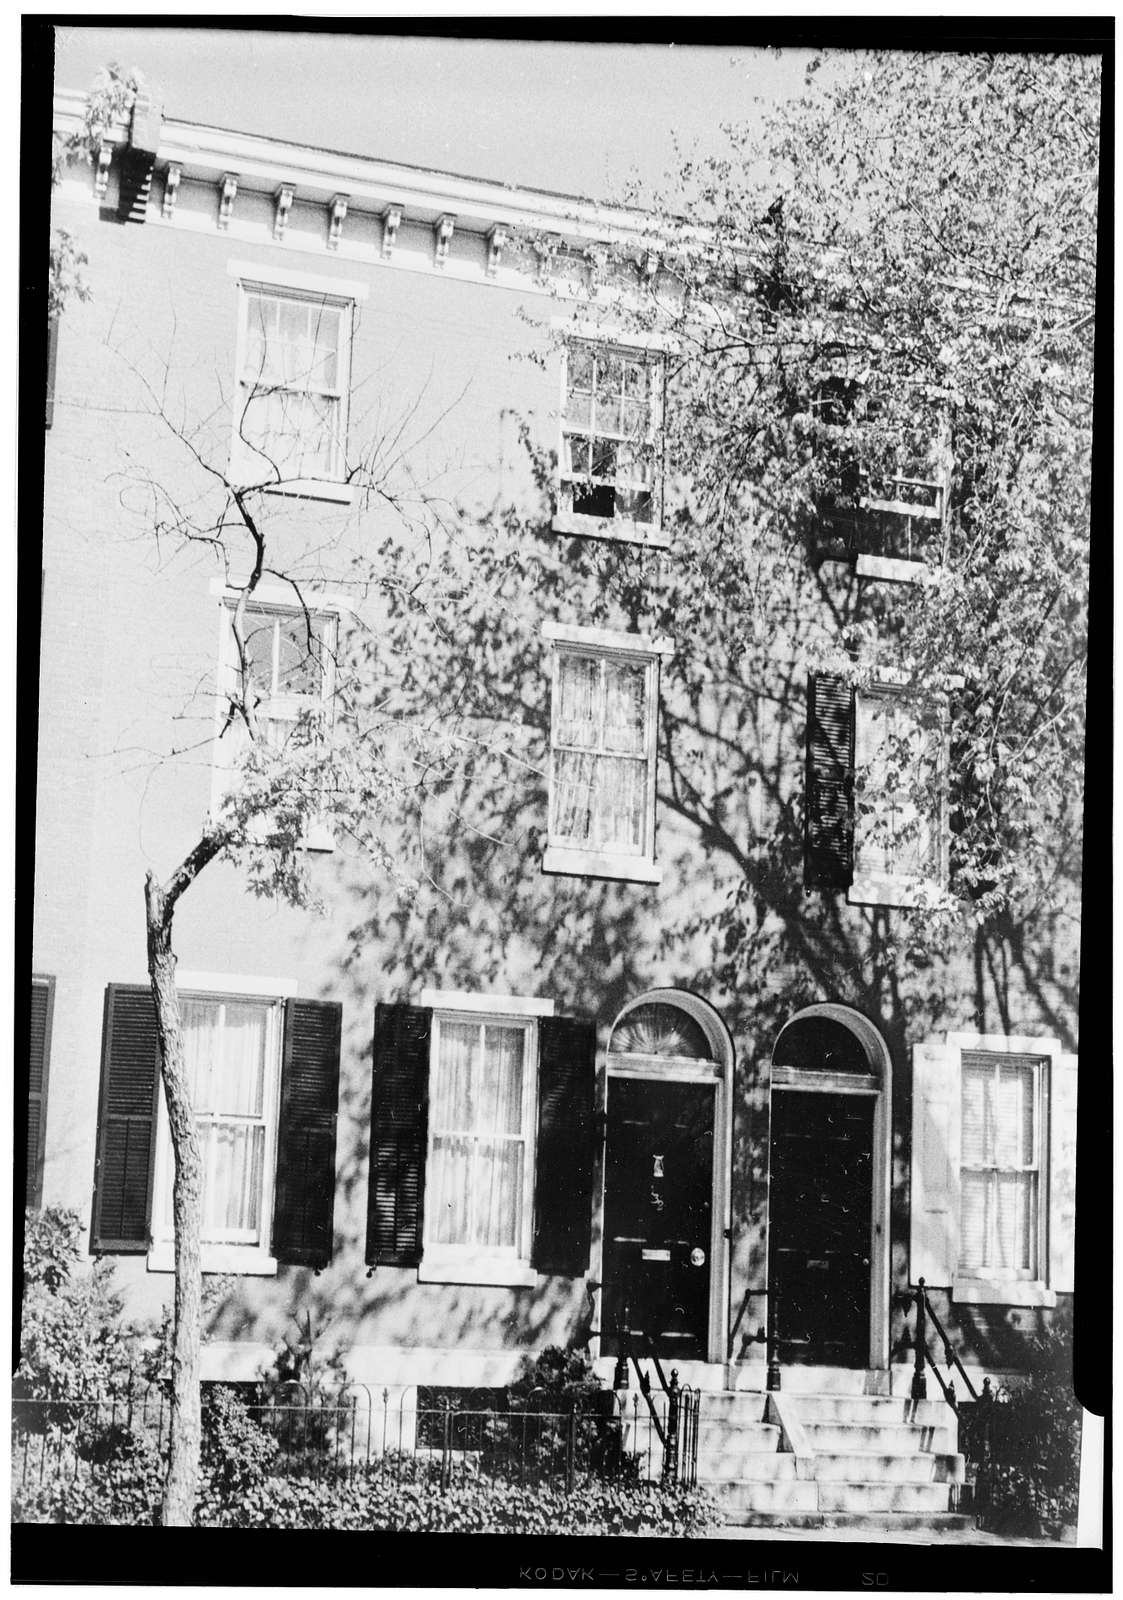 Southeast Area Survey, Sixth & G Streets (Synagogue), 132-144 & 900-905 Eleventh Street (Row Houses), 215 Second Street (House), Seventh & G Streets (School), 214 First Street (House), Washington, District of Columbia, DC